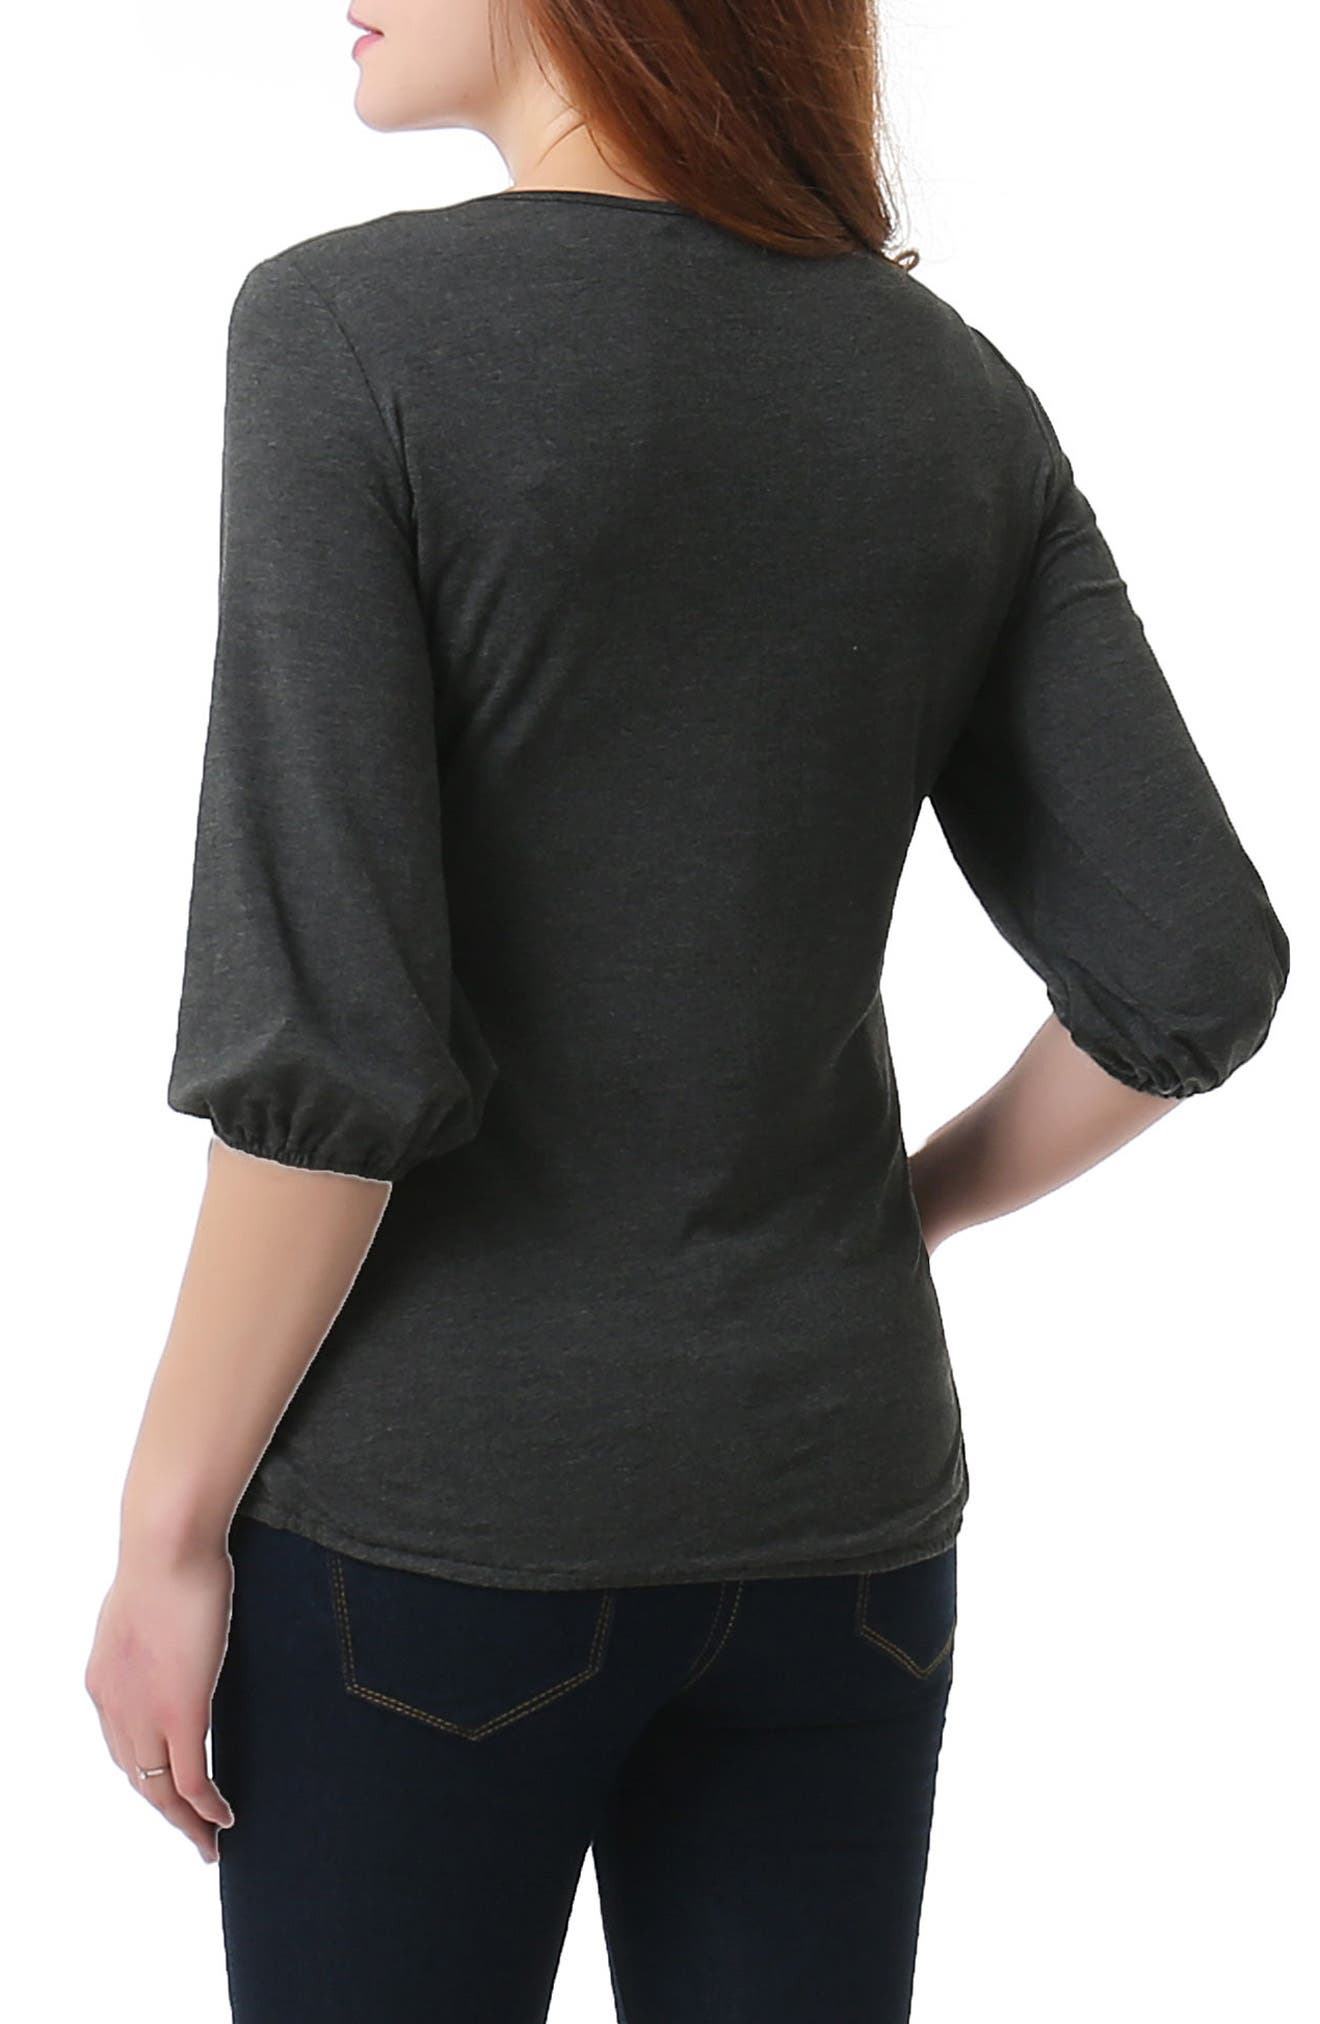 Dome Nursing/Maternity Top,                             Alternate thumbnail 2, color,                             DARK HEATHER GRAY